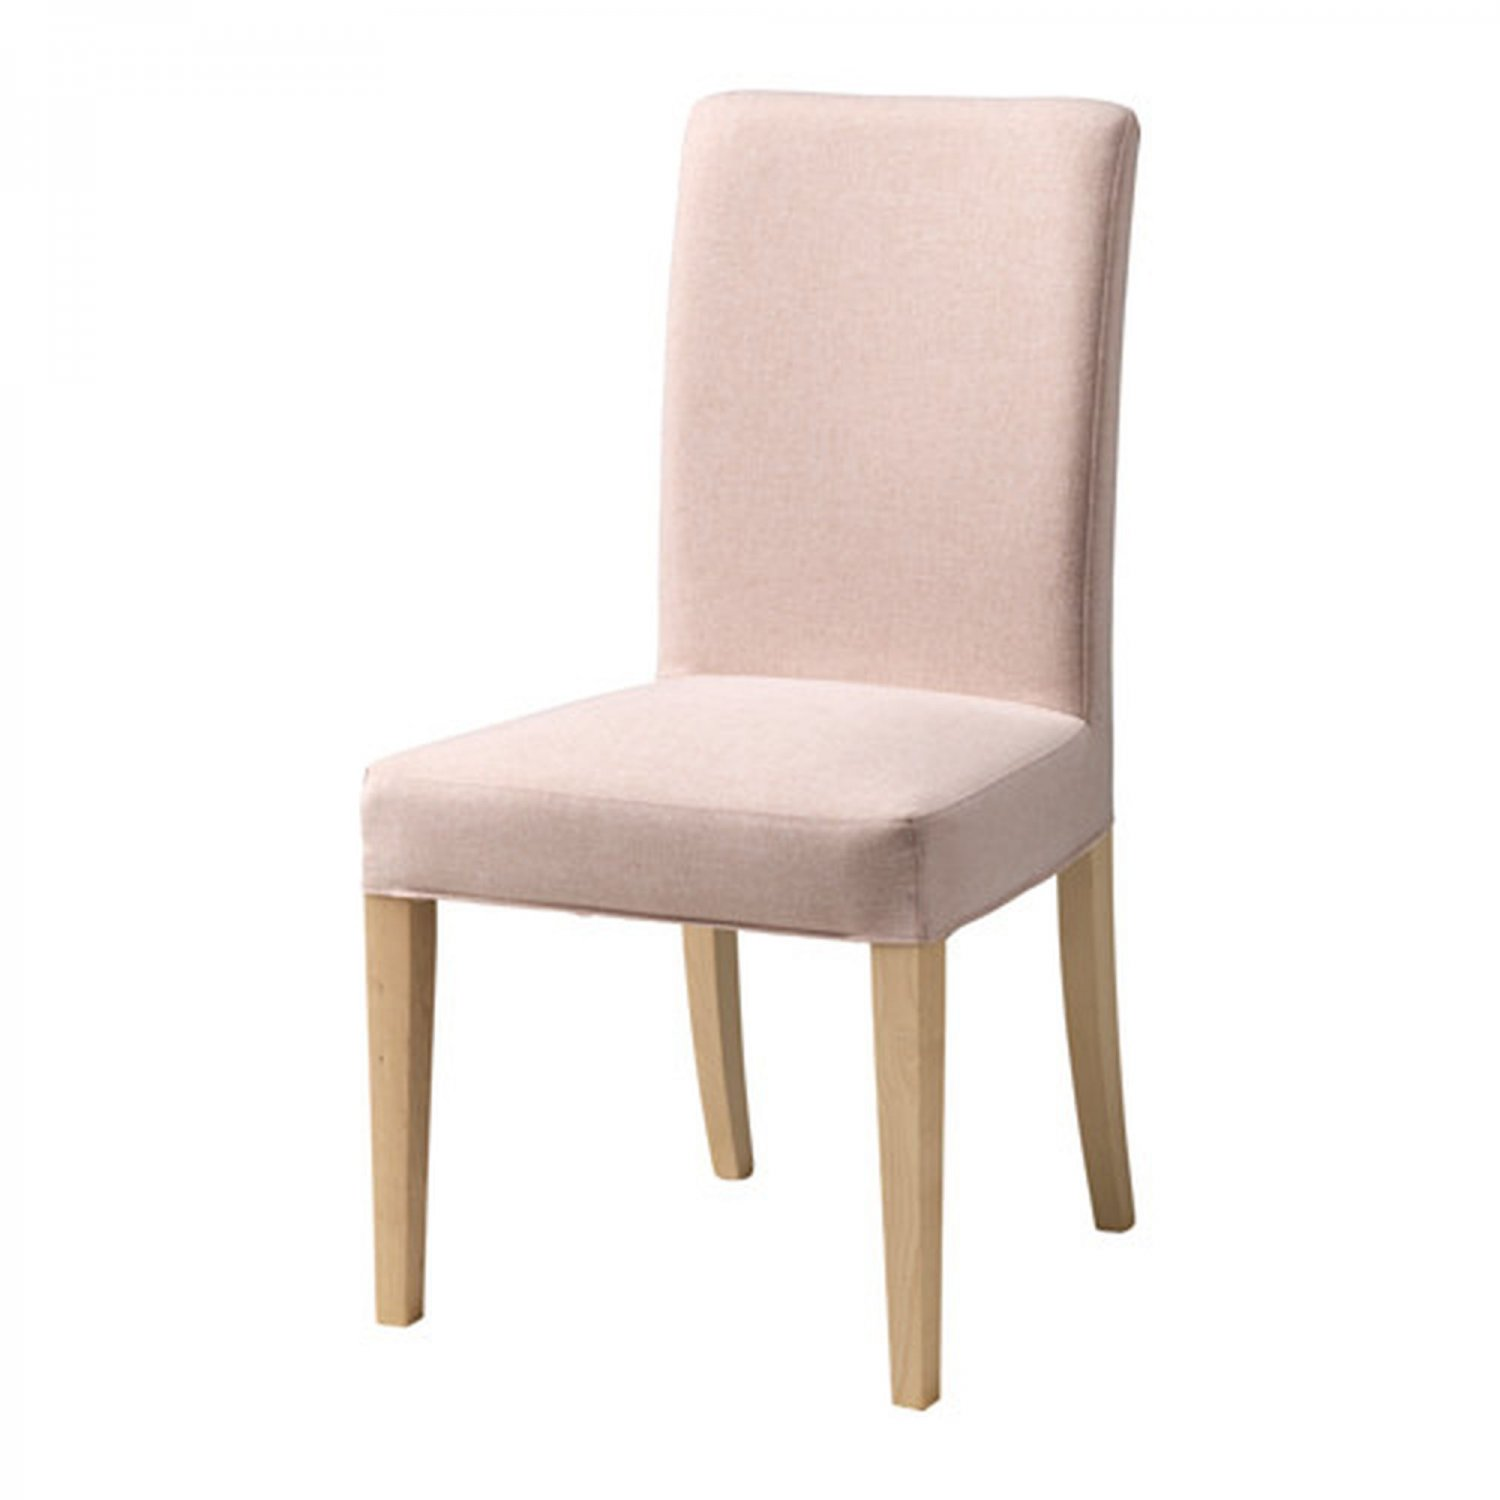 pale pink chair steel rubwood ikea henriksdal slipcover cover 21 quot 54cm gunnared